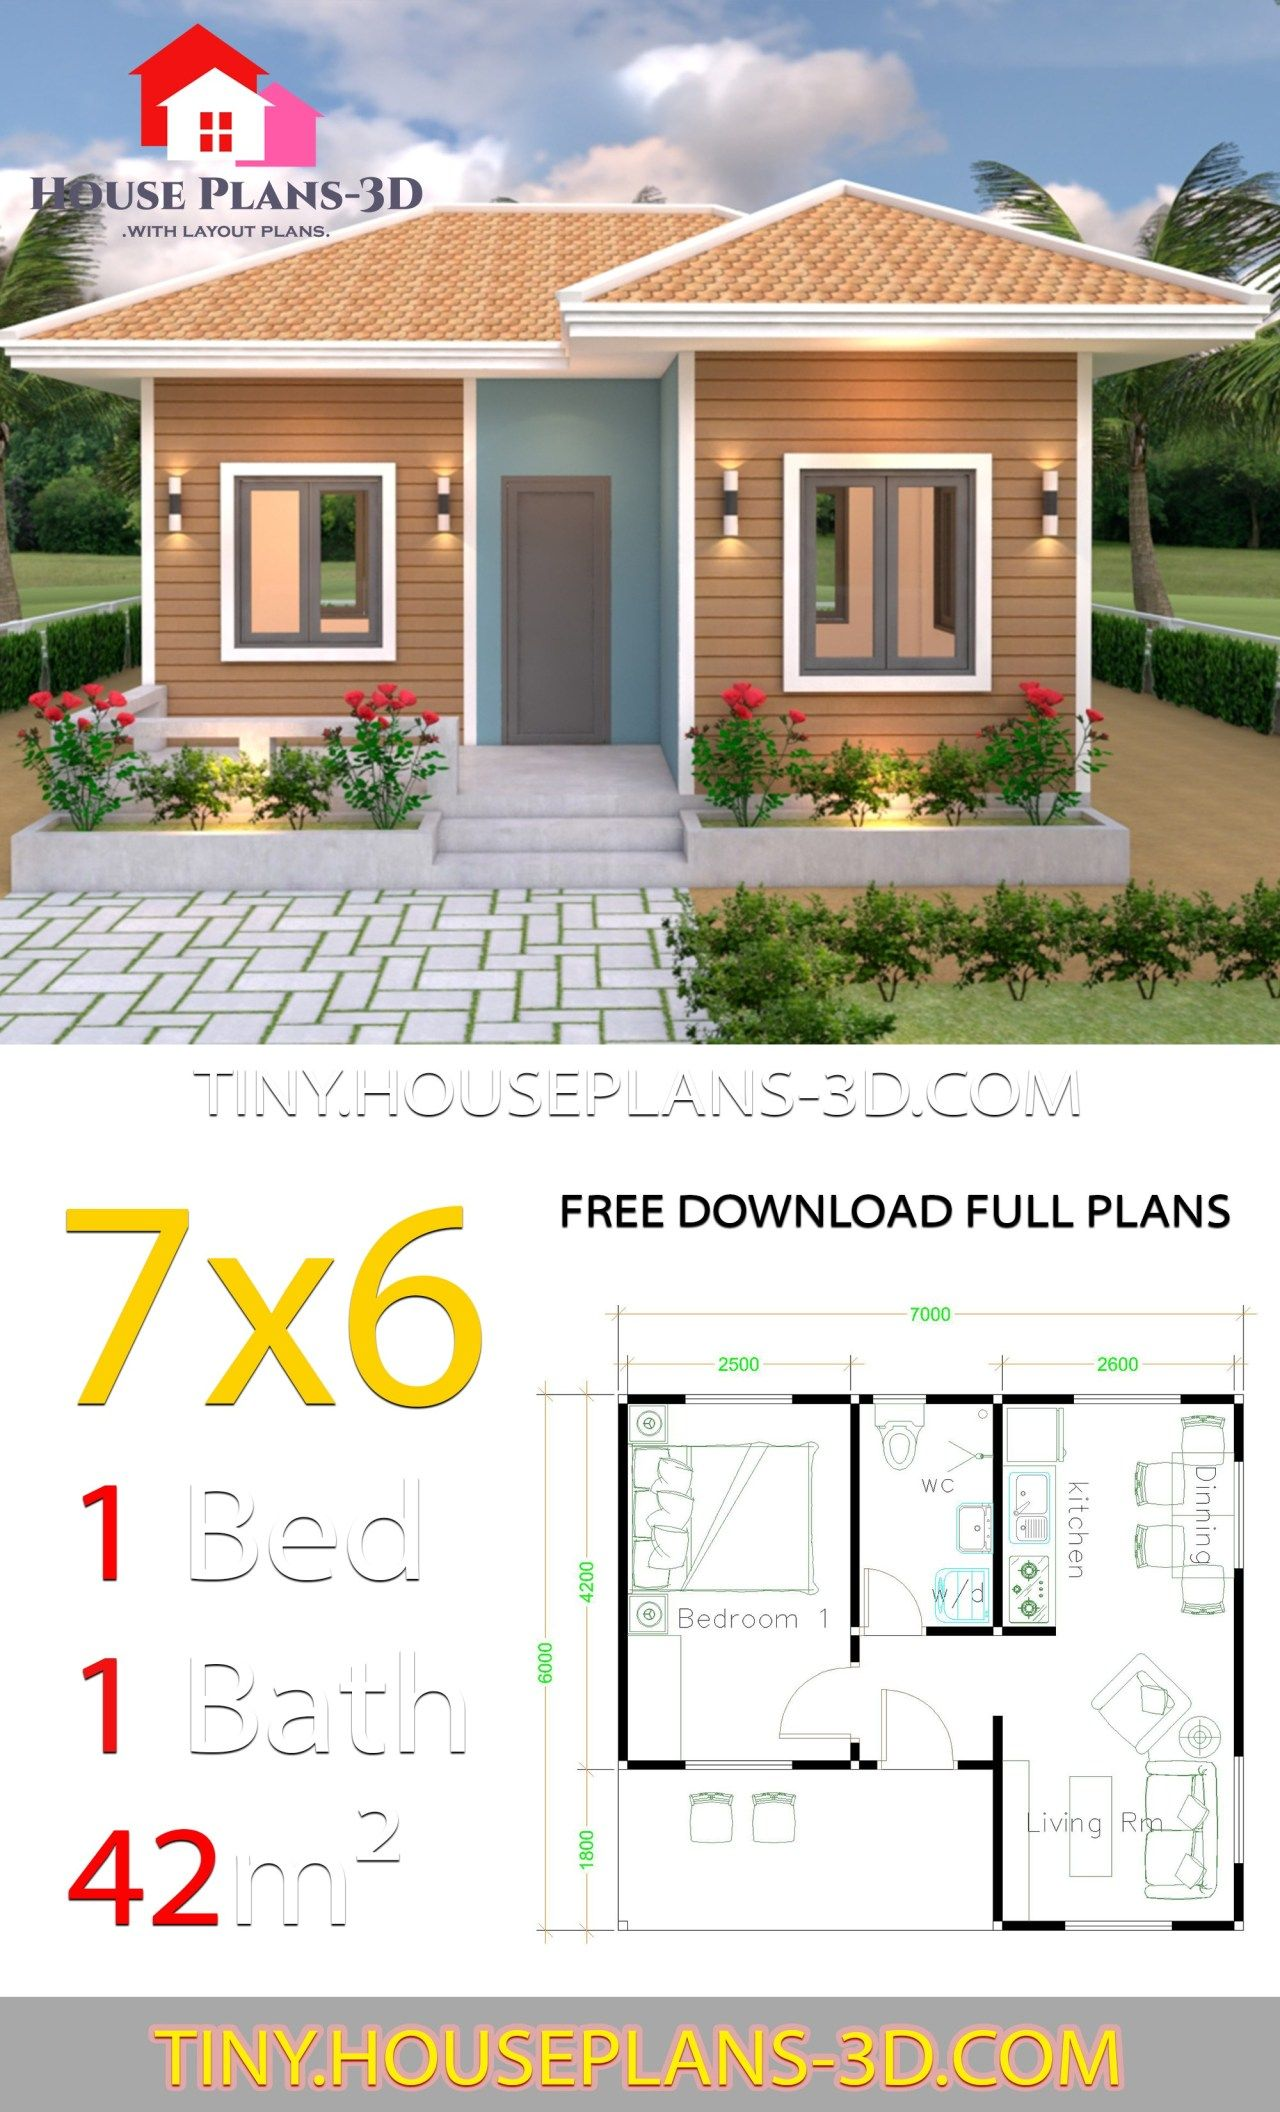 Tiny House Plans 7x6 With One Bedroom Hip Roof Tiny House Plans Small House Design Small House Design Philippines Small House Design Exterior